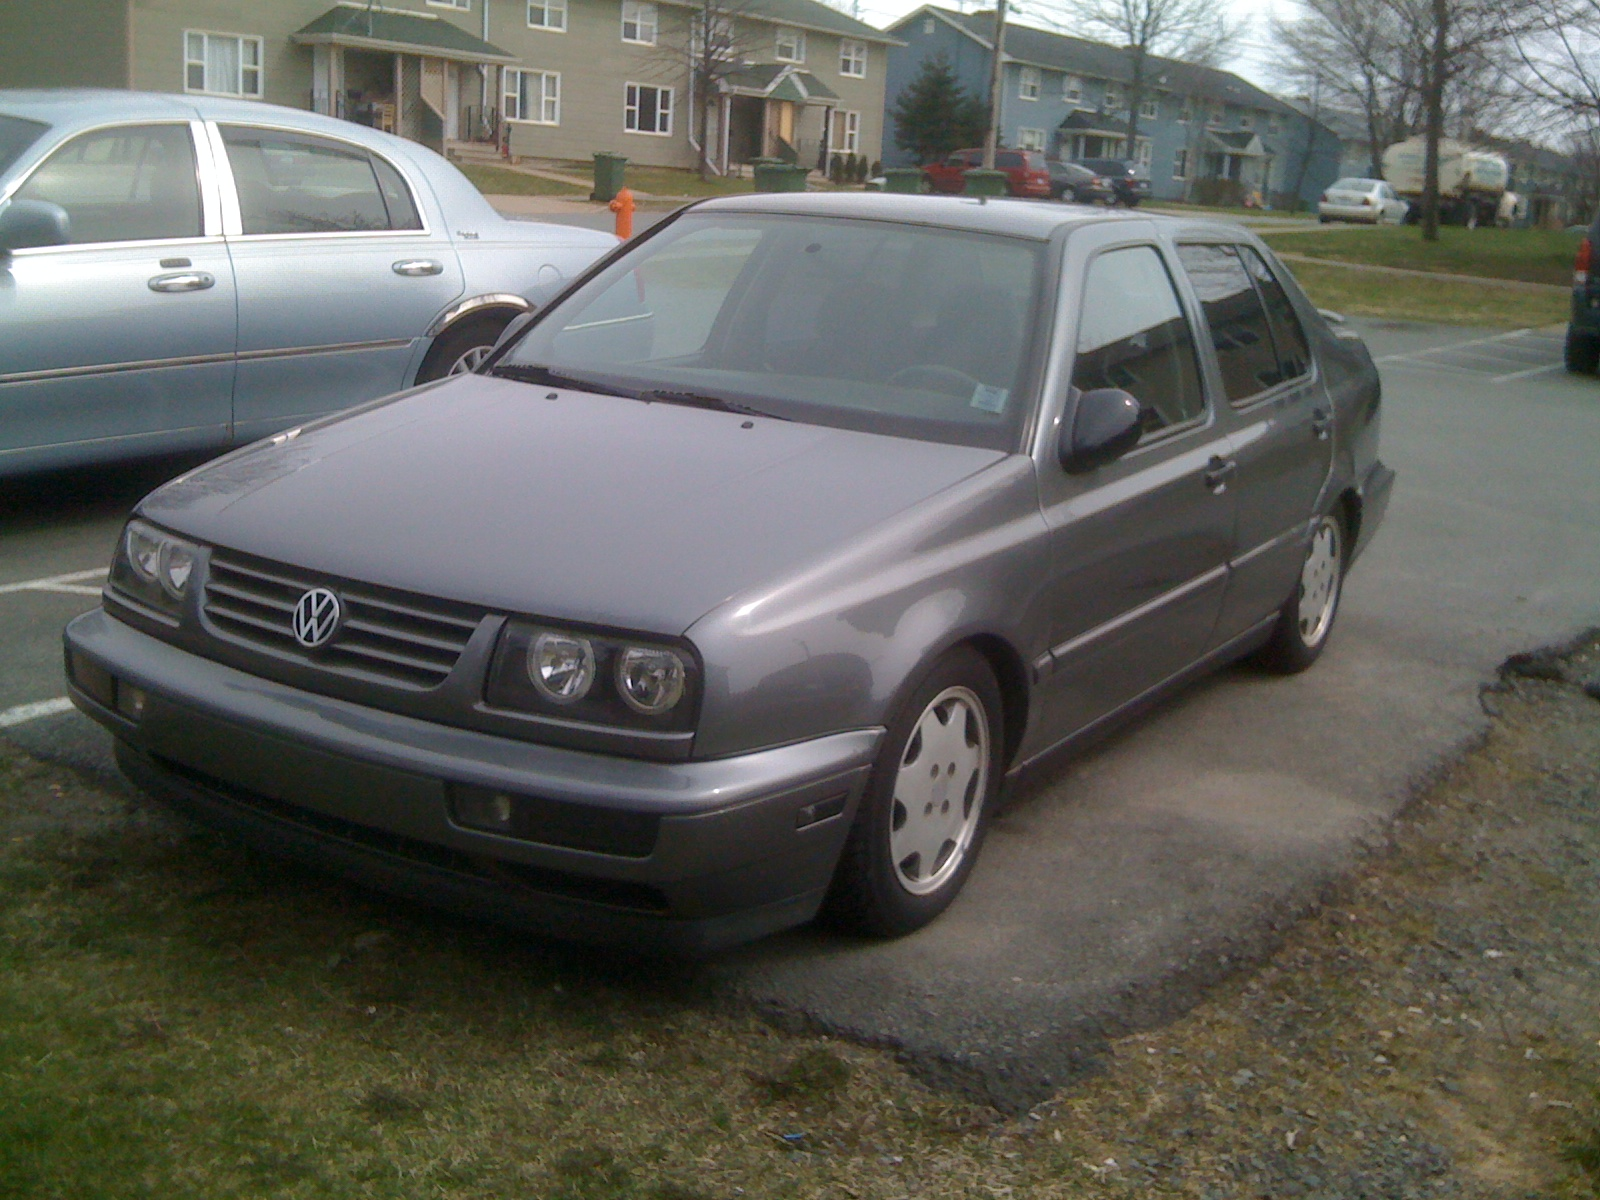 1999 Volkswagen Passat Pictures C5906 also A3 1 9 tdi good condition 2001 furthermore Volkswagen Finishes Up Jetta Bluetdi Development On Sale This S moreover 2000 Volkswagen Passat Overview C5899 as well Astra G Cabrio 2001. on 2012 volkswagen passat specs